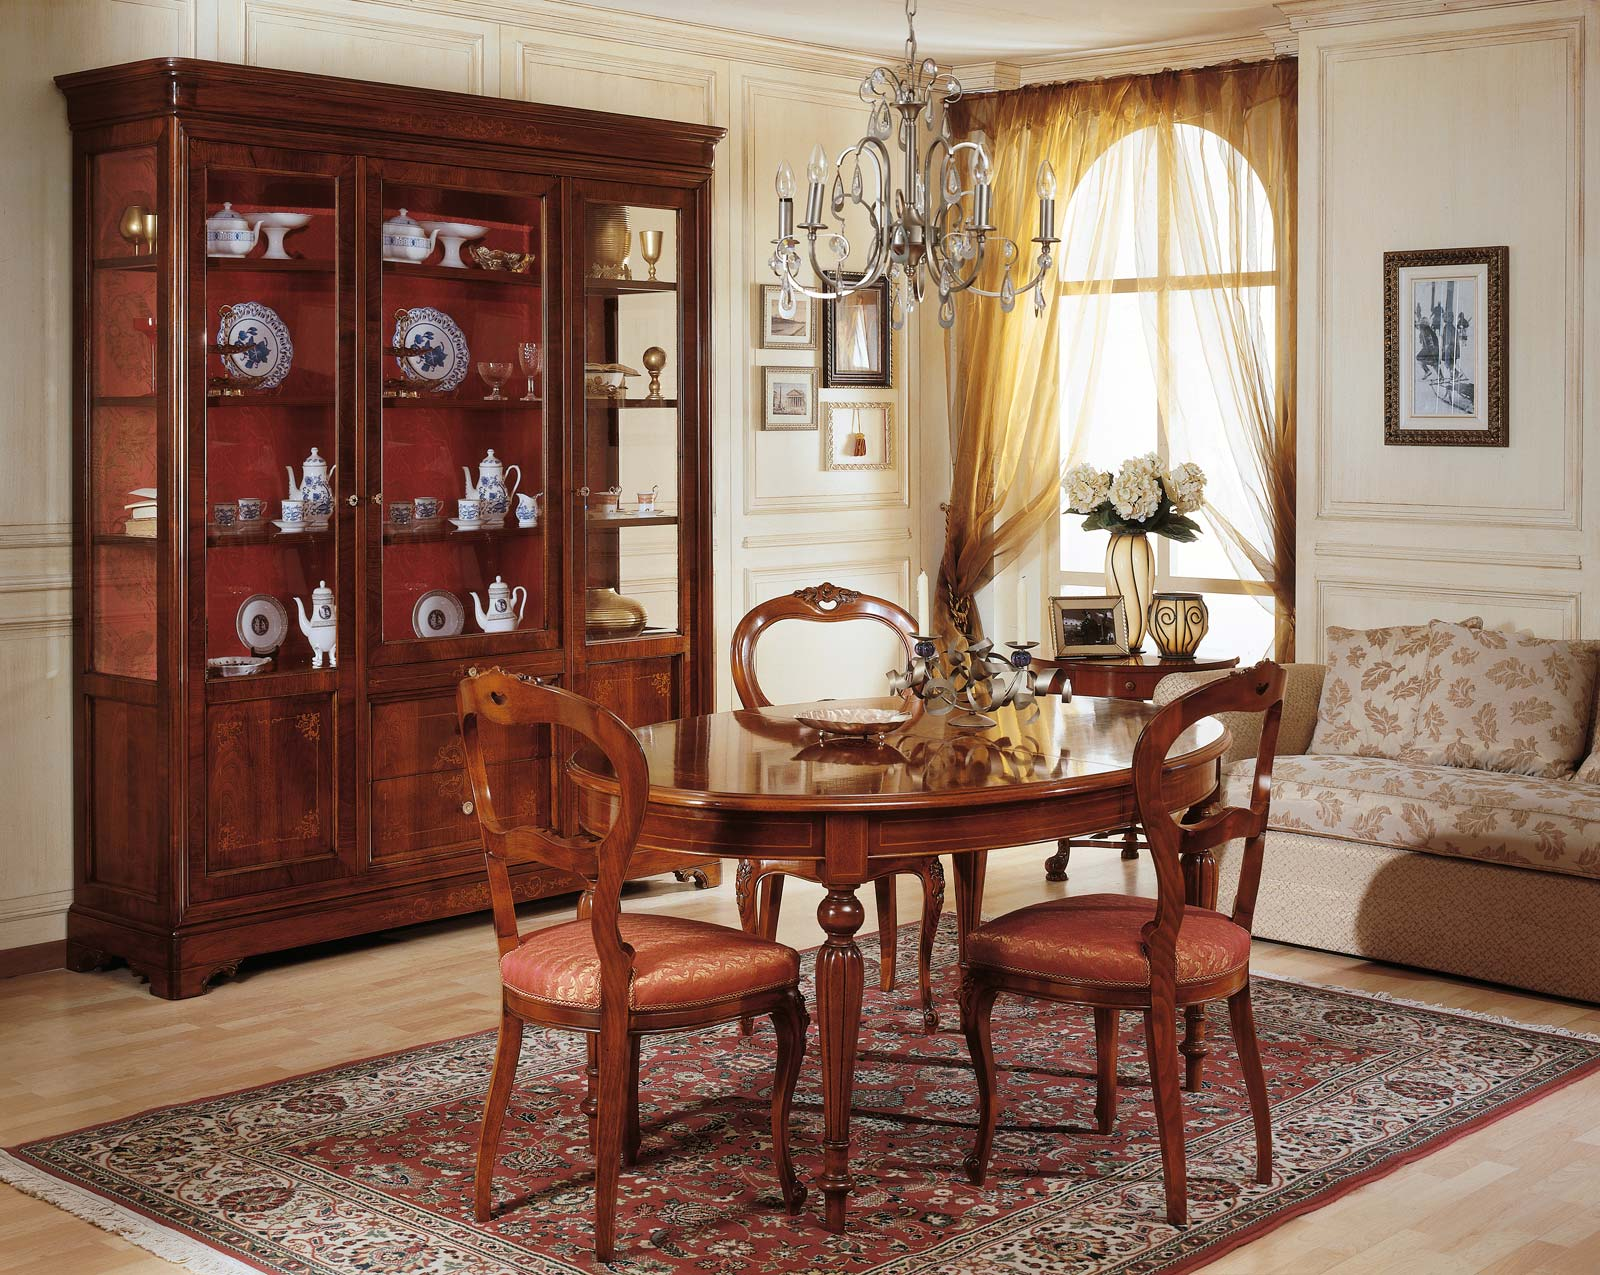 Dining room french 19th century table and glass showcase vimercati classic furniture - Dining room showcase designs ...